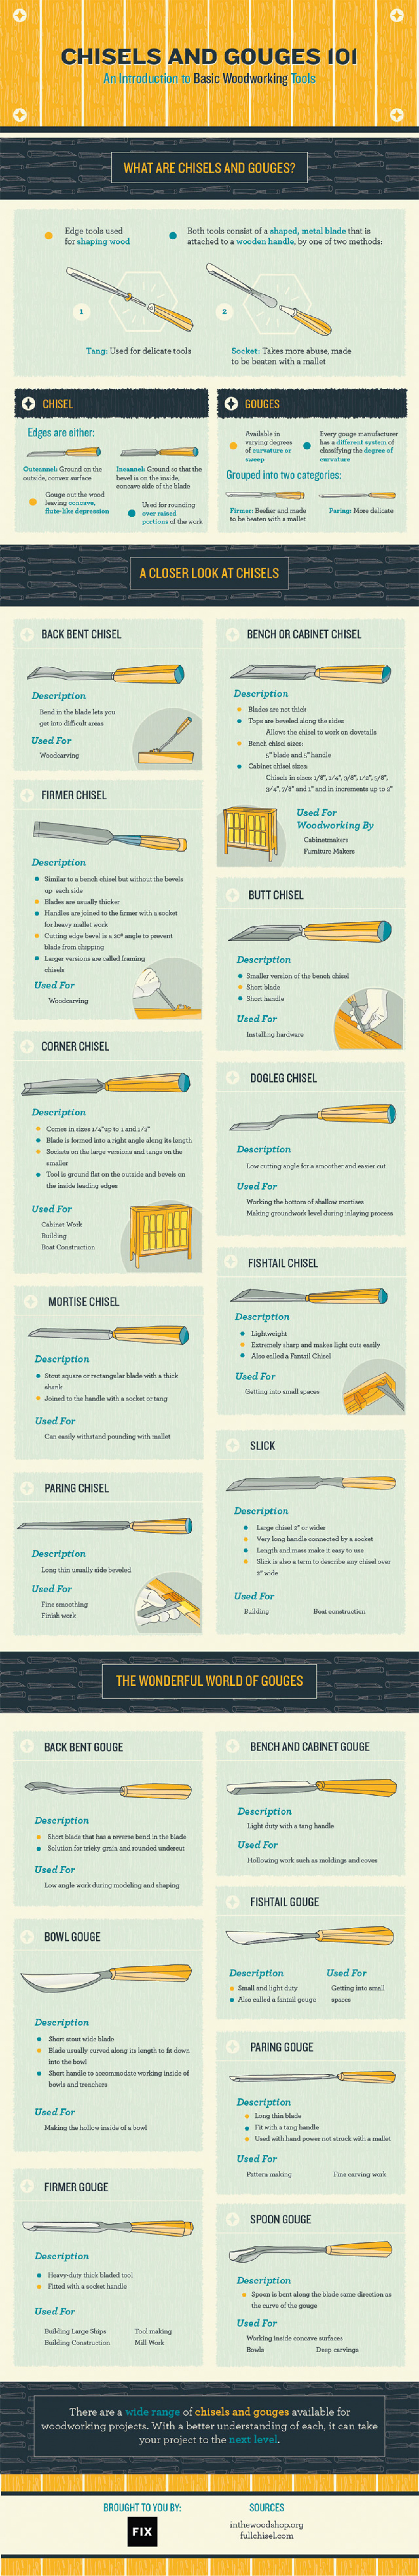 Chisels and Gouges 101: An Introduction to Basic Woodworking Tools Infographic